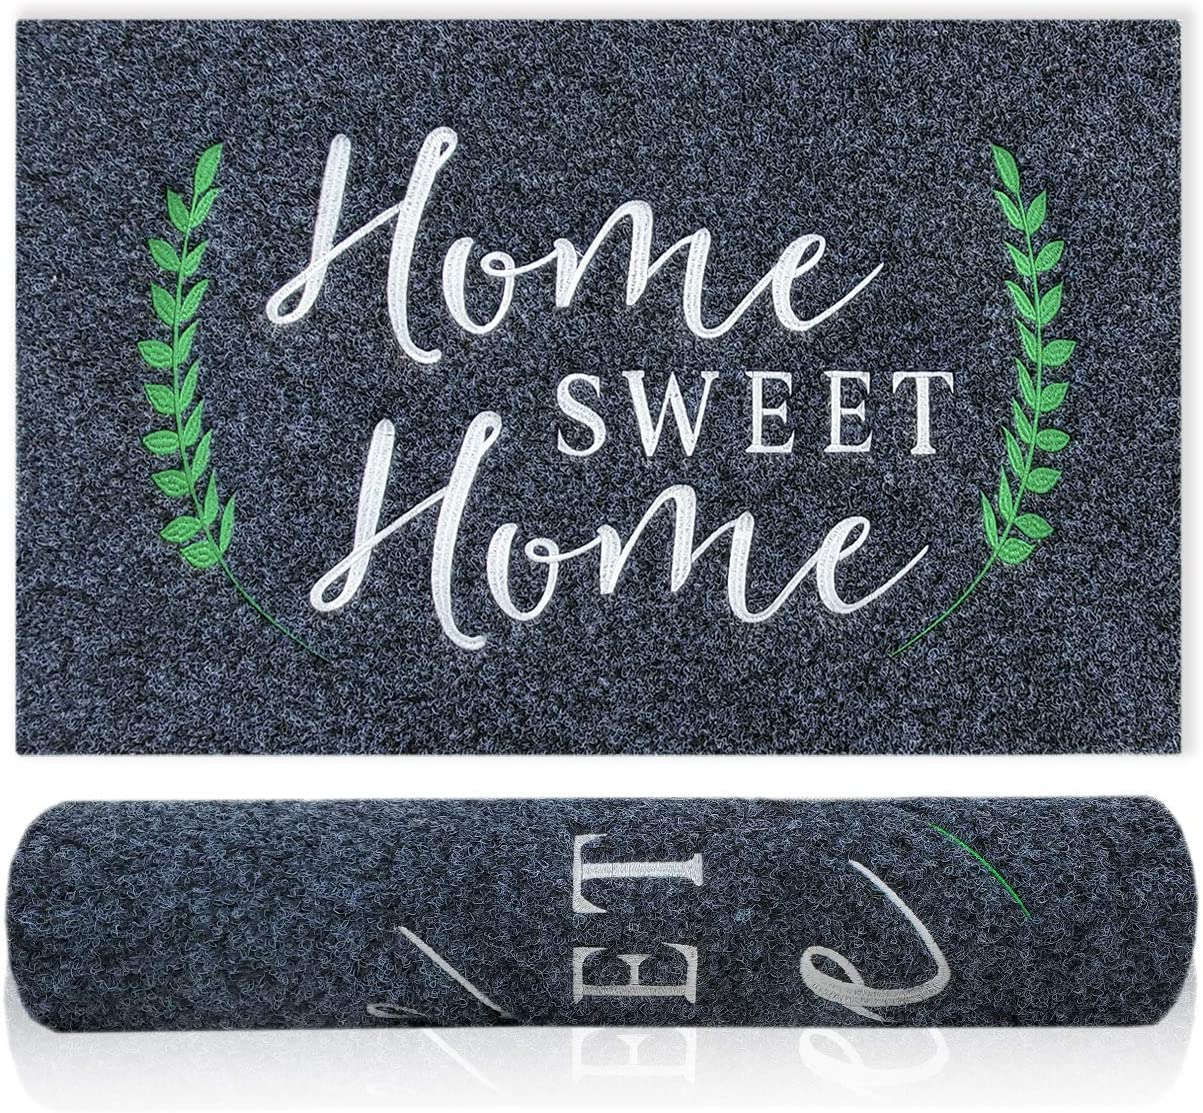 Welcome Mat Outdoor Indoor Home Sweet Home Doormat Non Slip Natural Rubber Backing Super Absorb Mud Easy to Clean High Traffic Areas Door Mats for Home Entrance